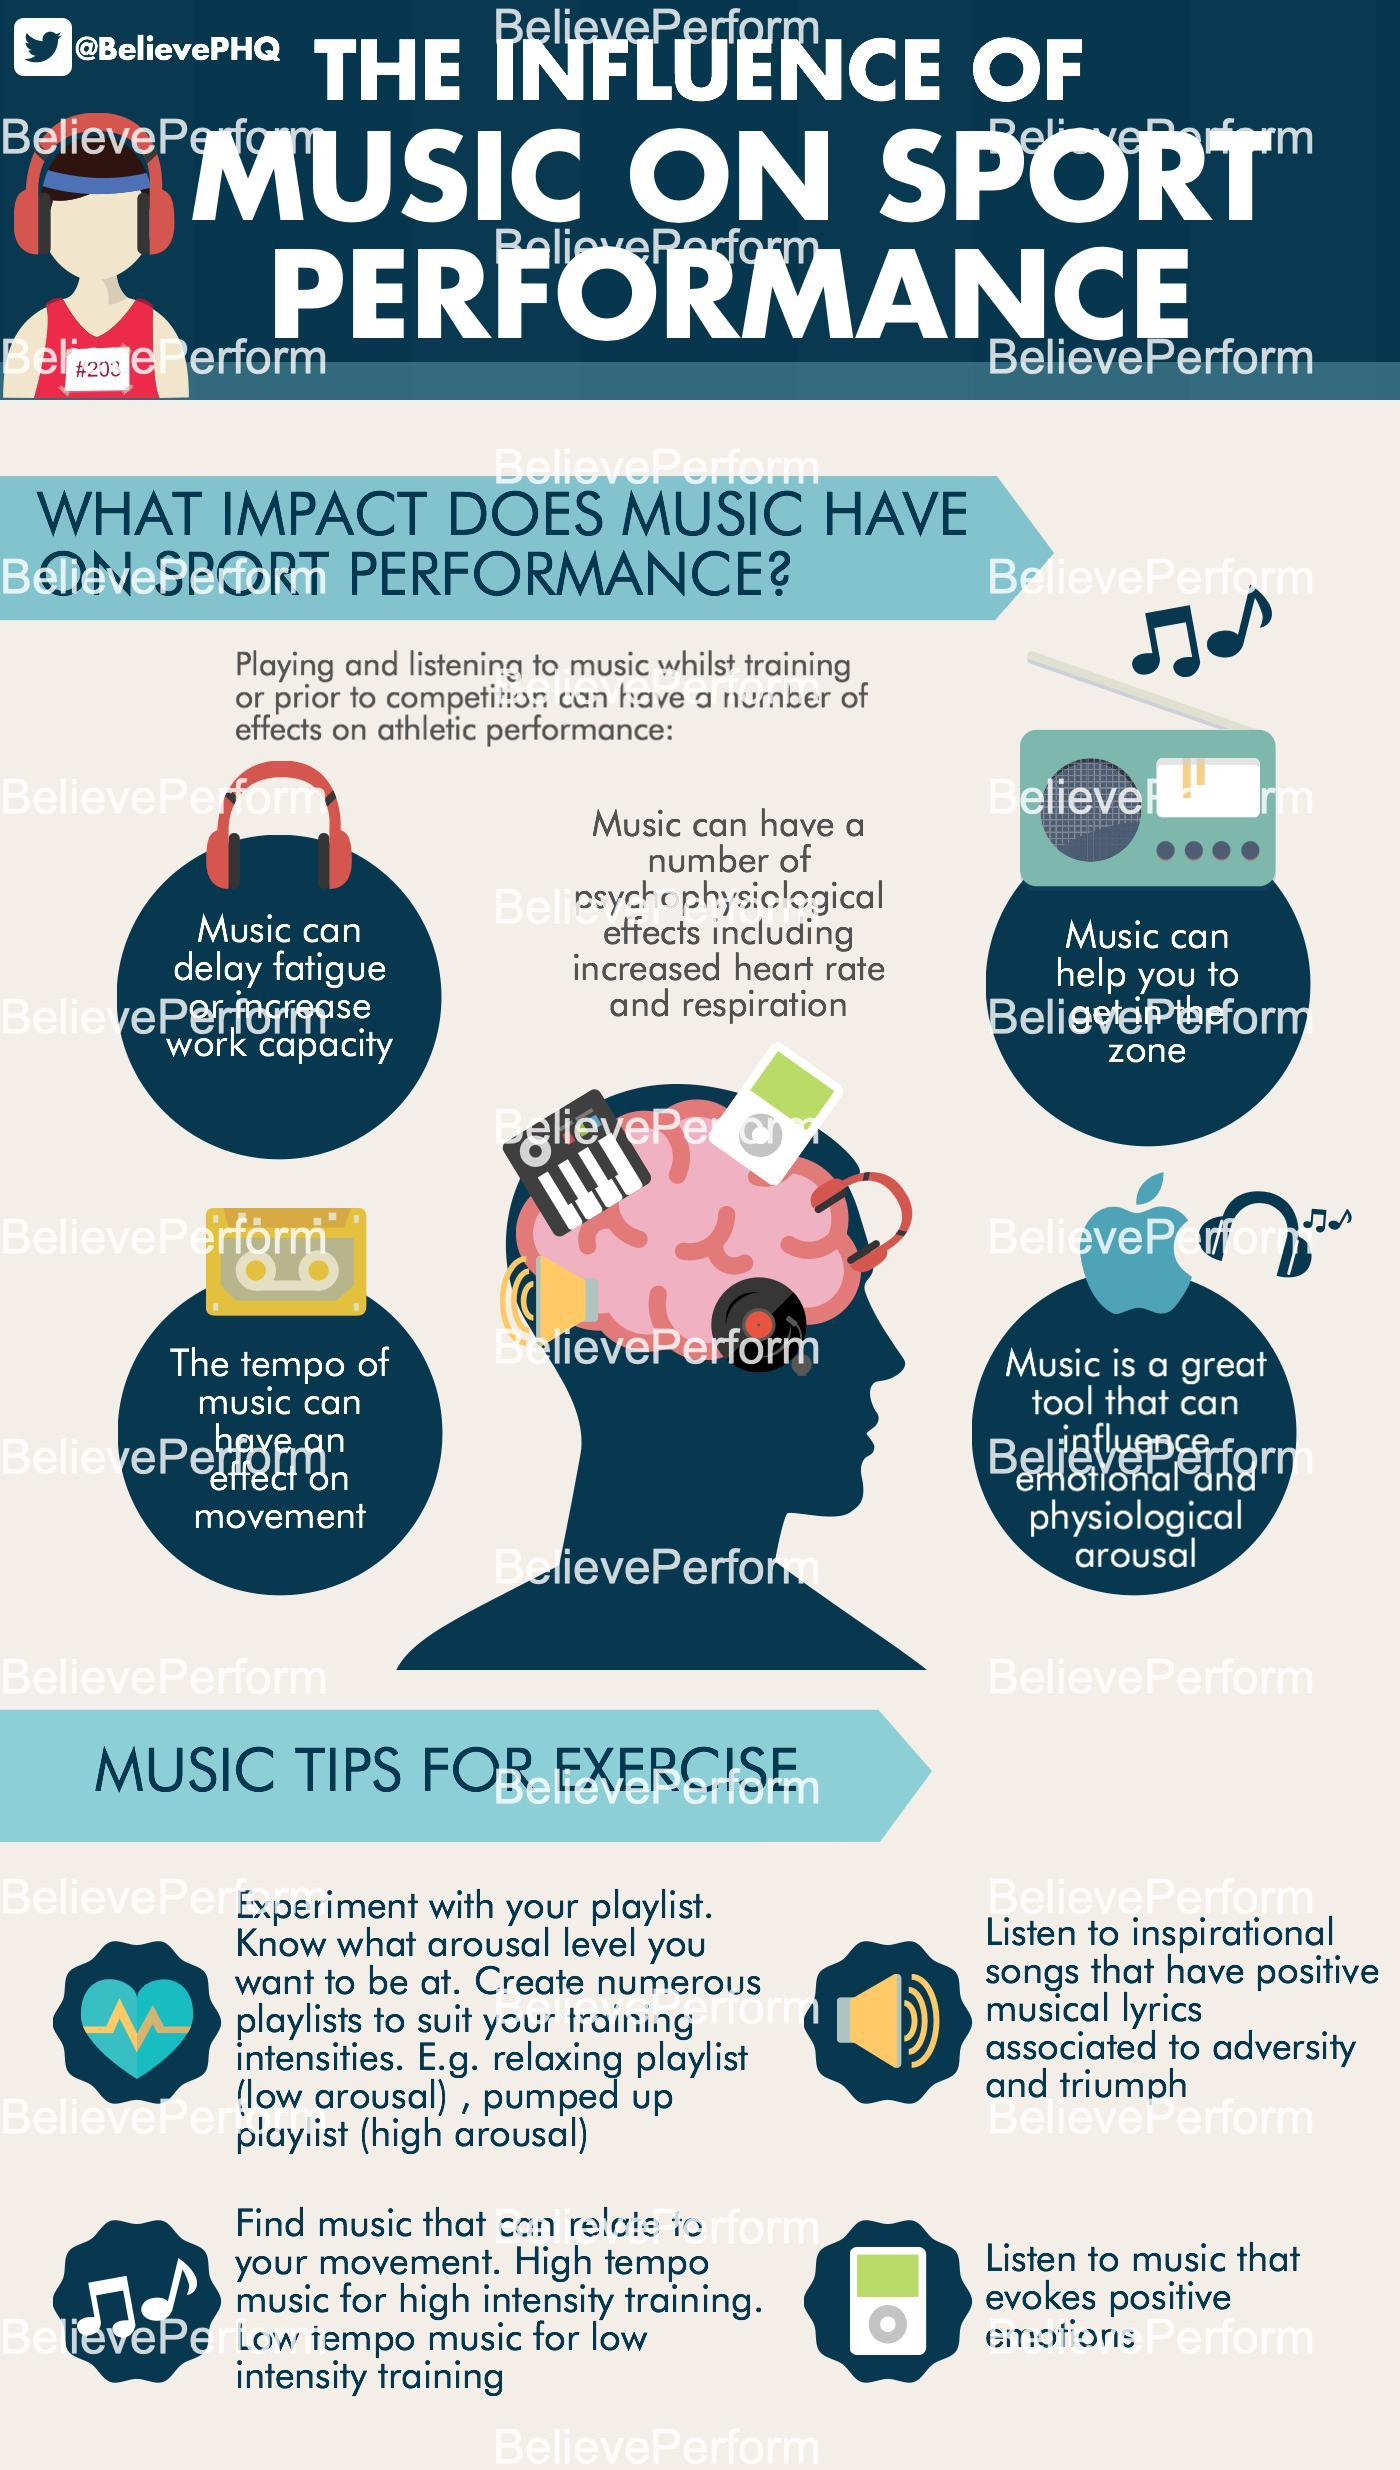 The influence of music on sport performance